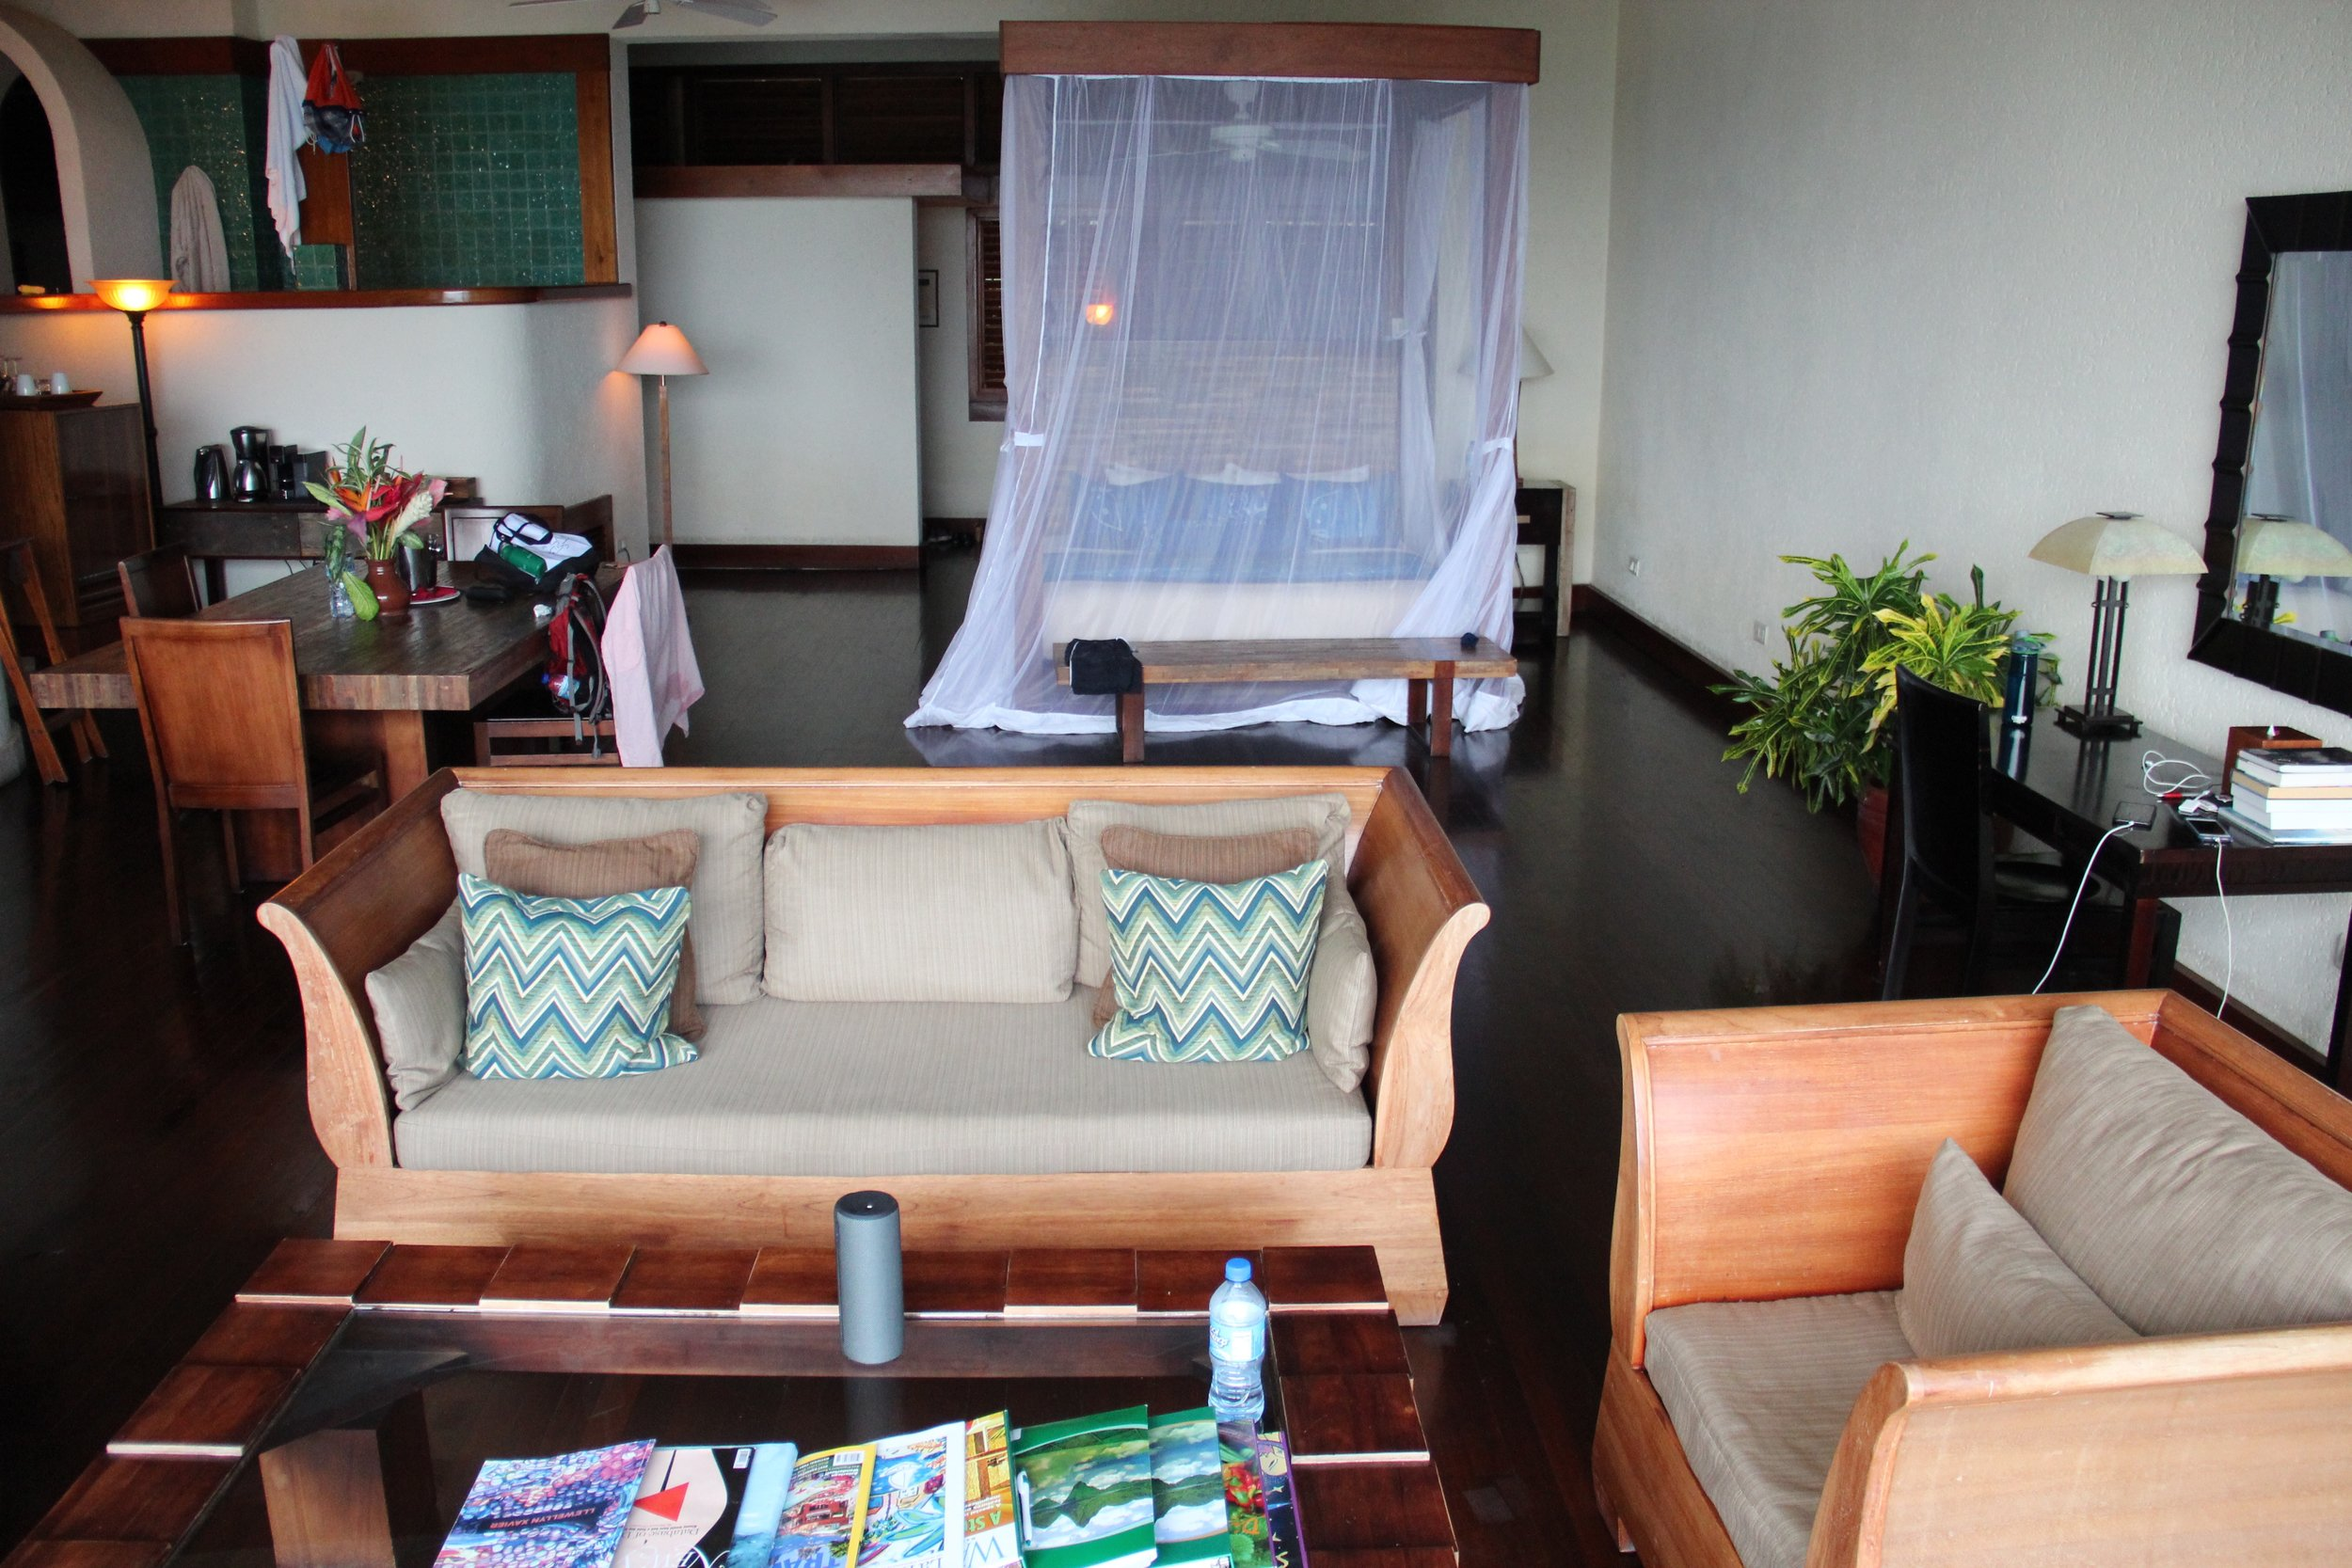 There were closets behind the bed, and a bathroom with jacuzzi on the top left platform.